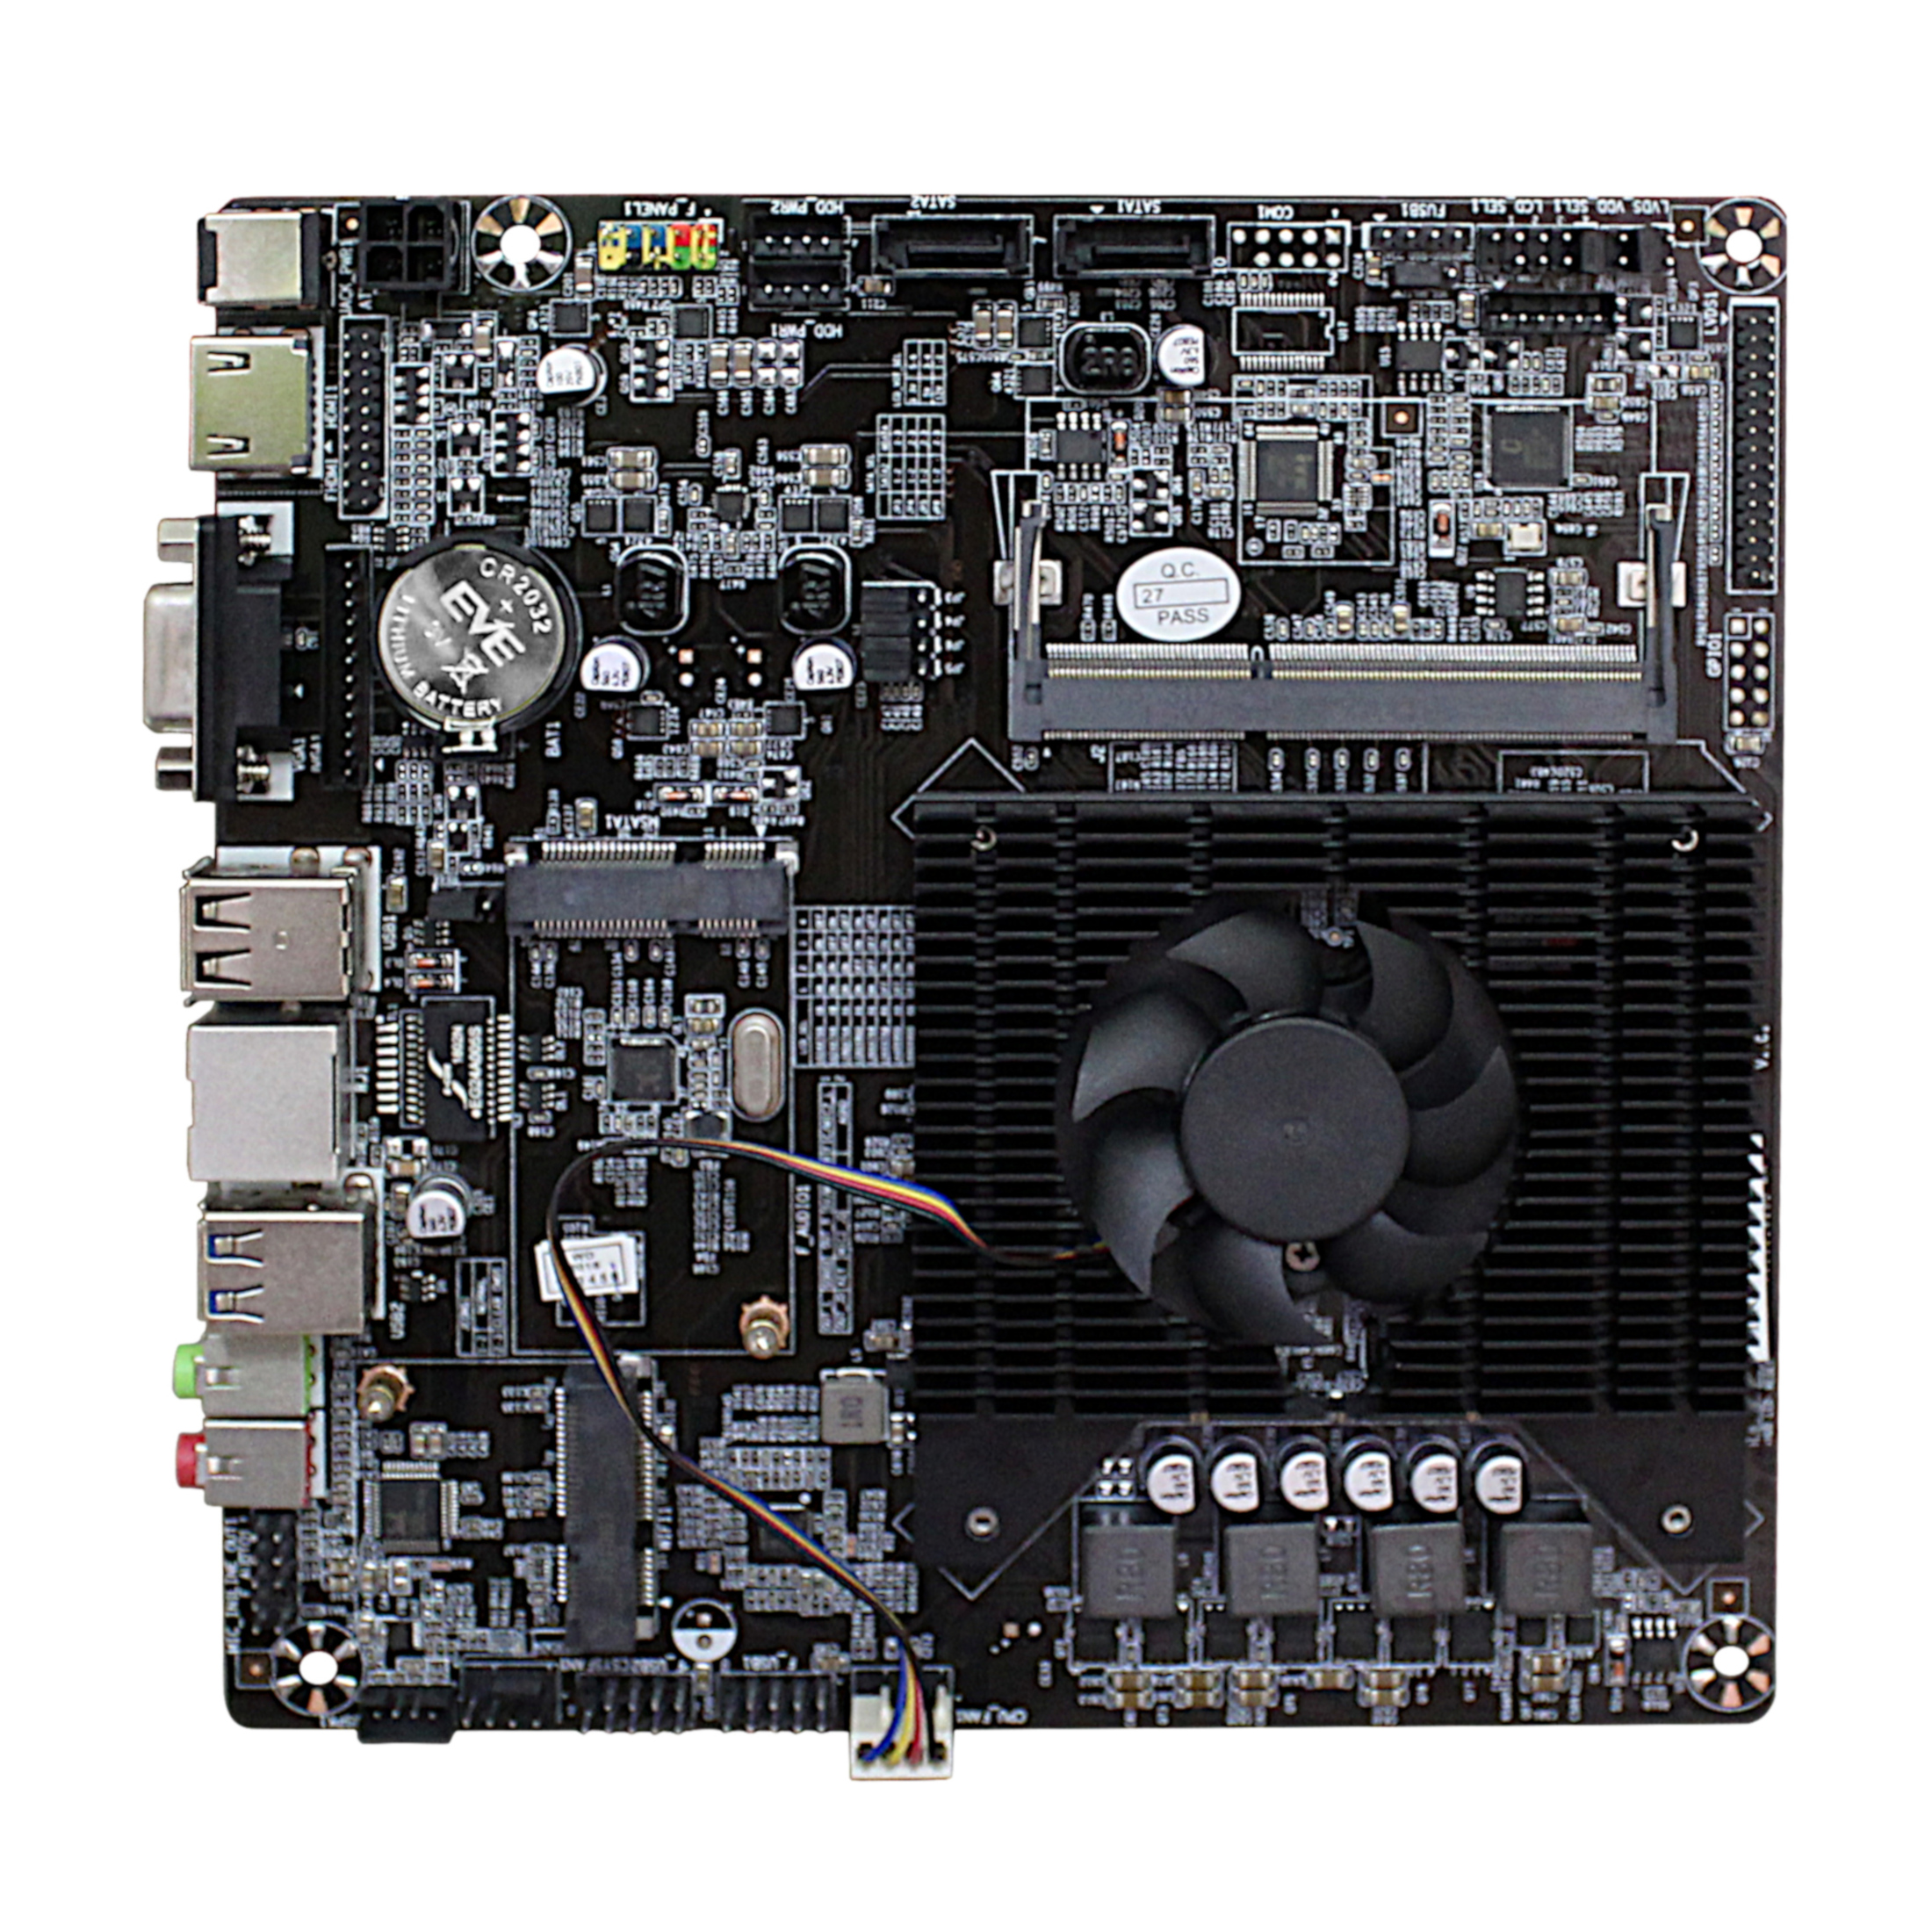 Ultra-thin Mini itx Motherboard Built in CPU A8 6410 R5 Video Graph Processing APU <font><b>USB</b></font> 3.0 VGA RJ45 HDMI <font><b>USB</b></font> mSata Use 12V <font><b>DC</b></font> image